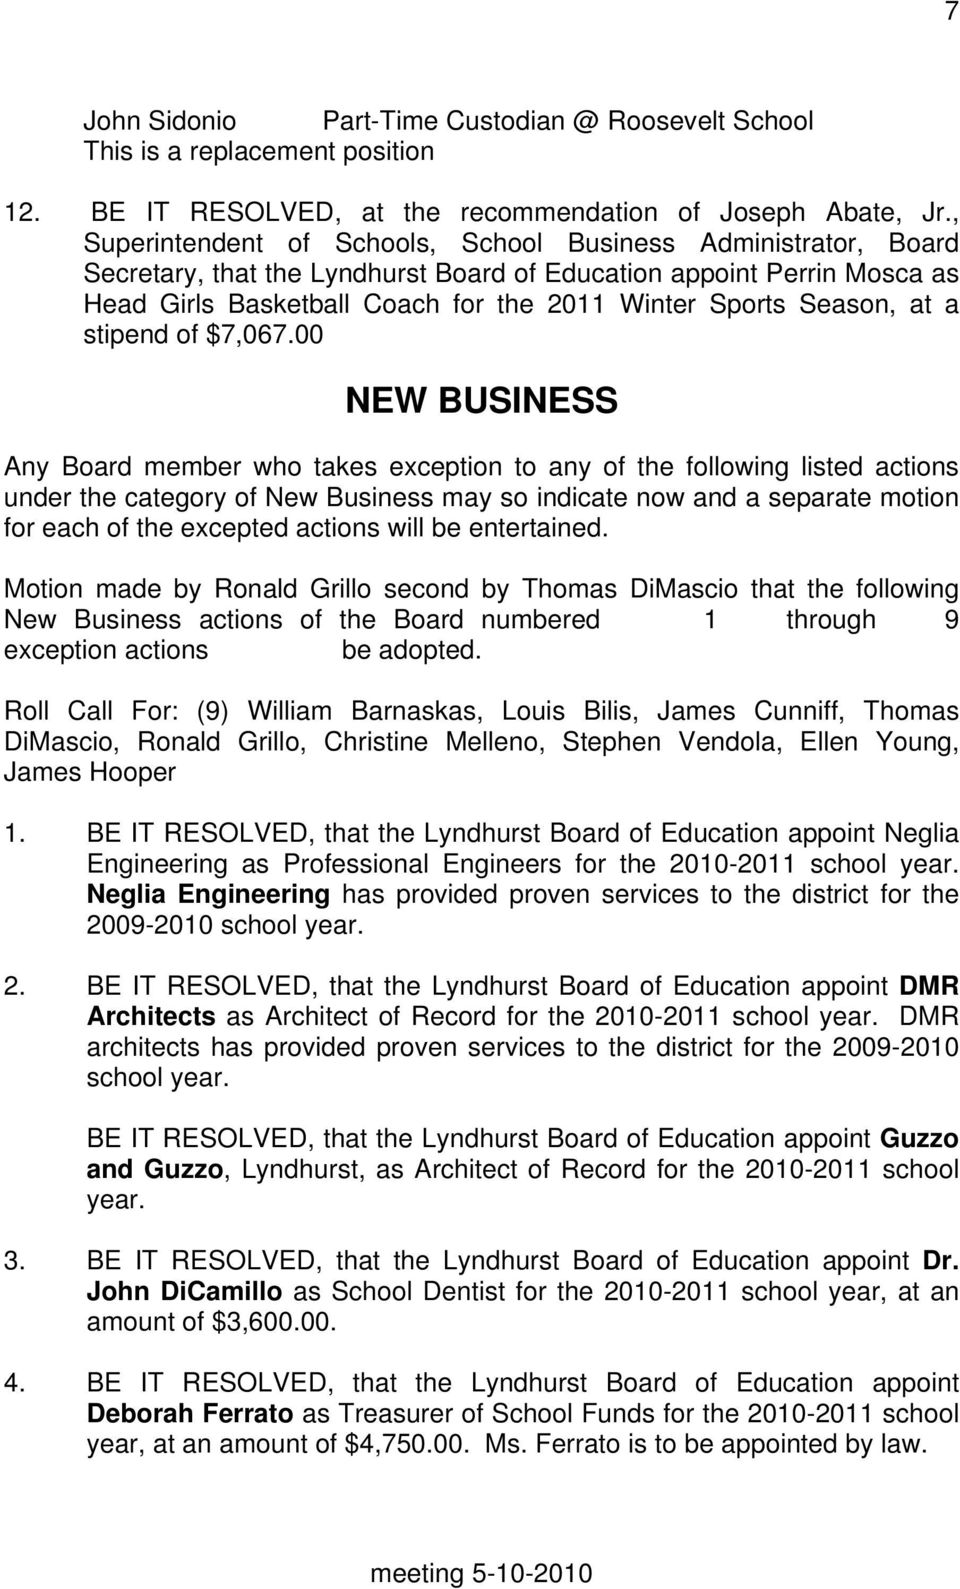 00 NEW BUSINESS Any Board member who takes exception to any of the following listed actions under the category of New Business may so indicate now and a separate motion for each of the excepted